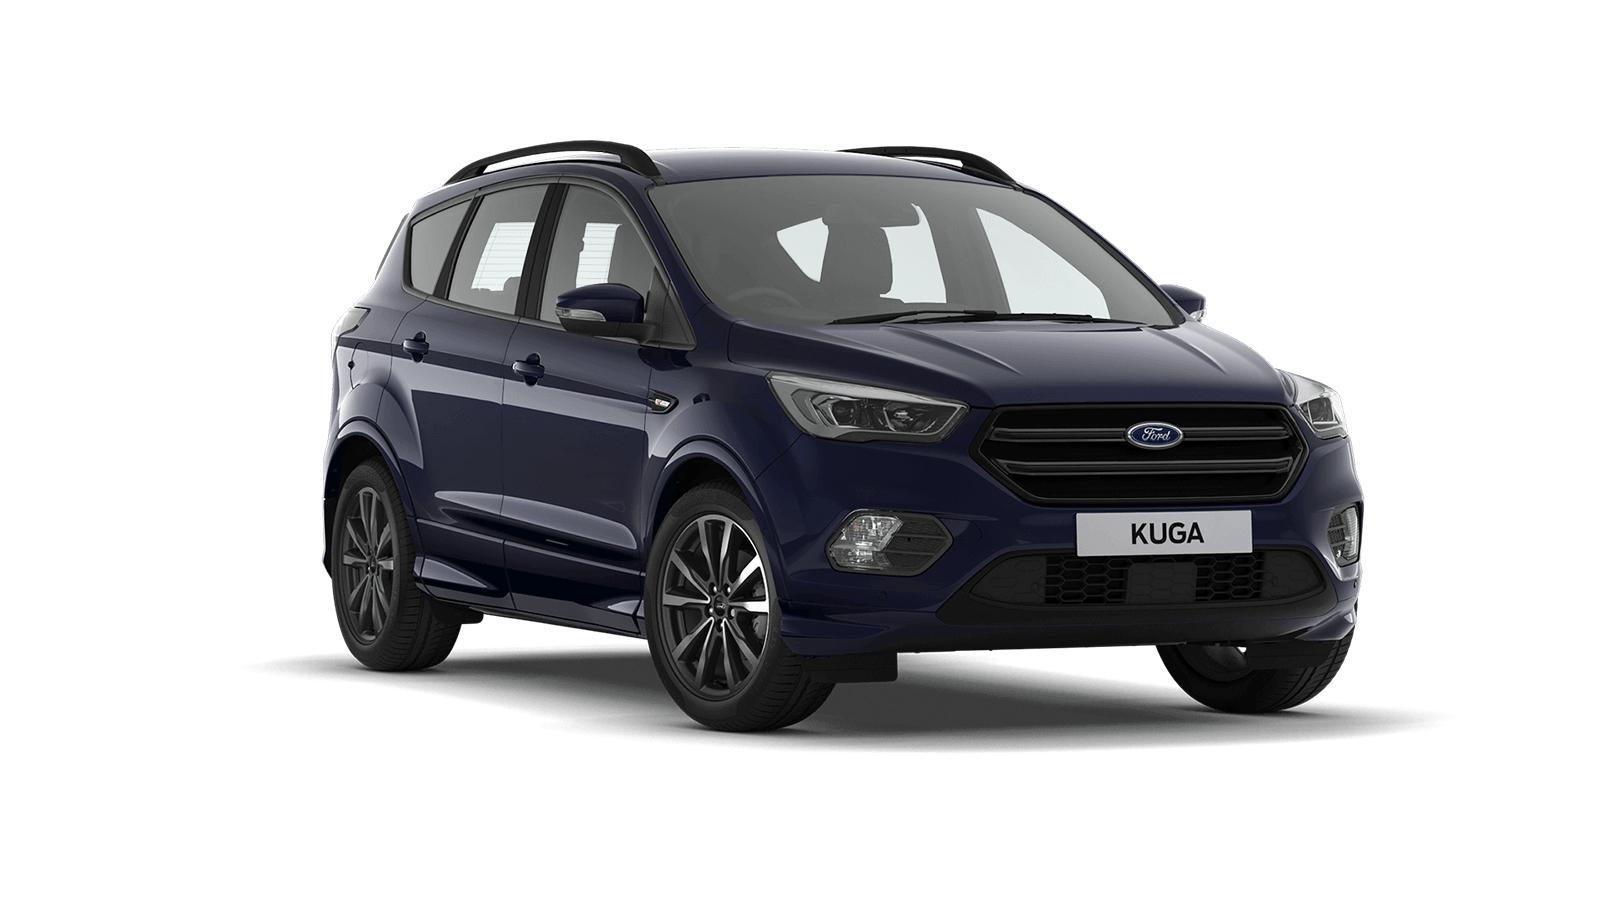 2019 Ford Kuga Interior HD Images | New Car News